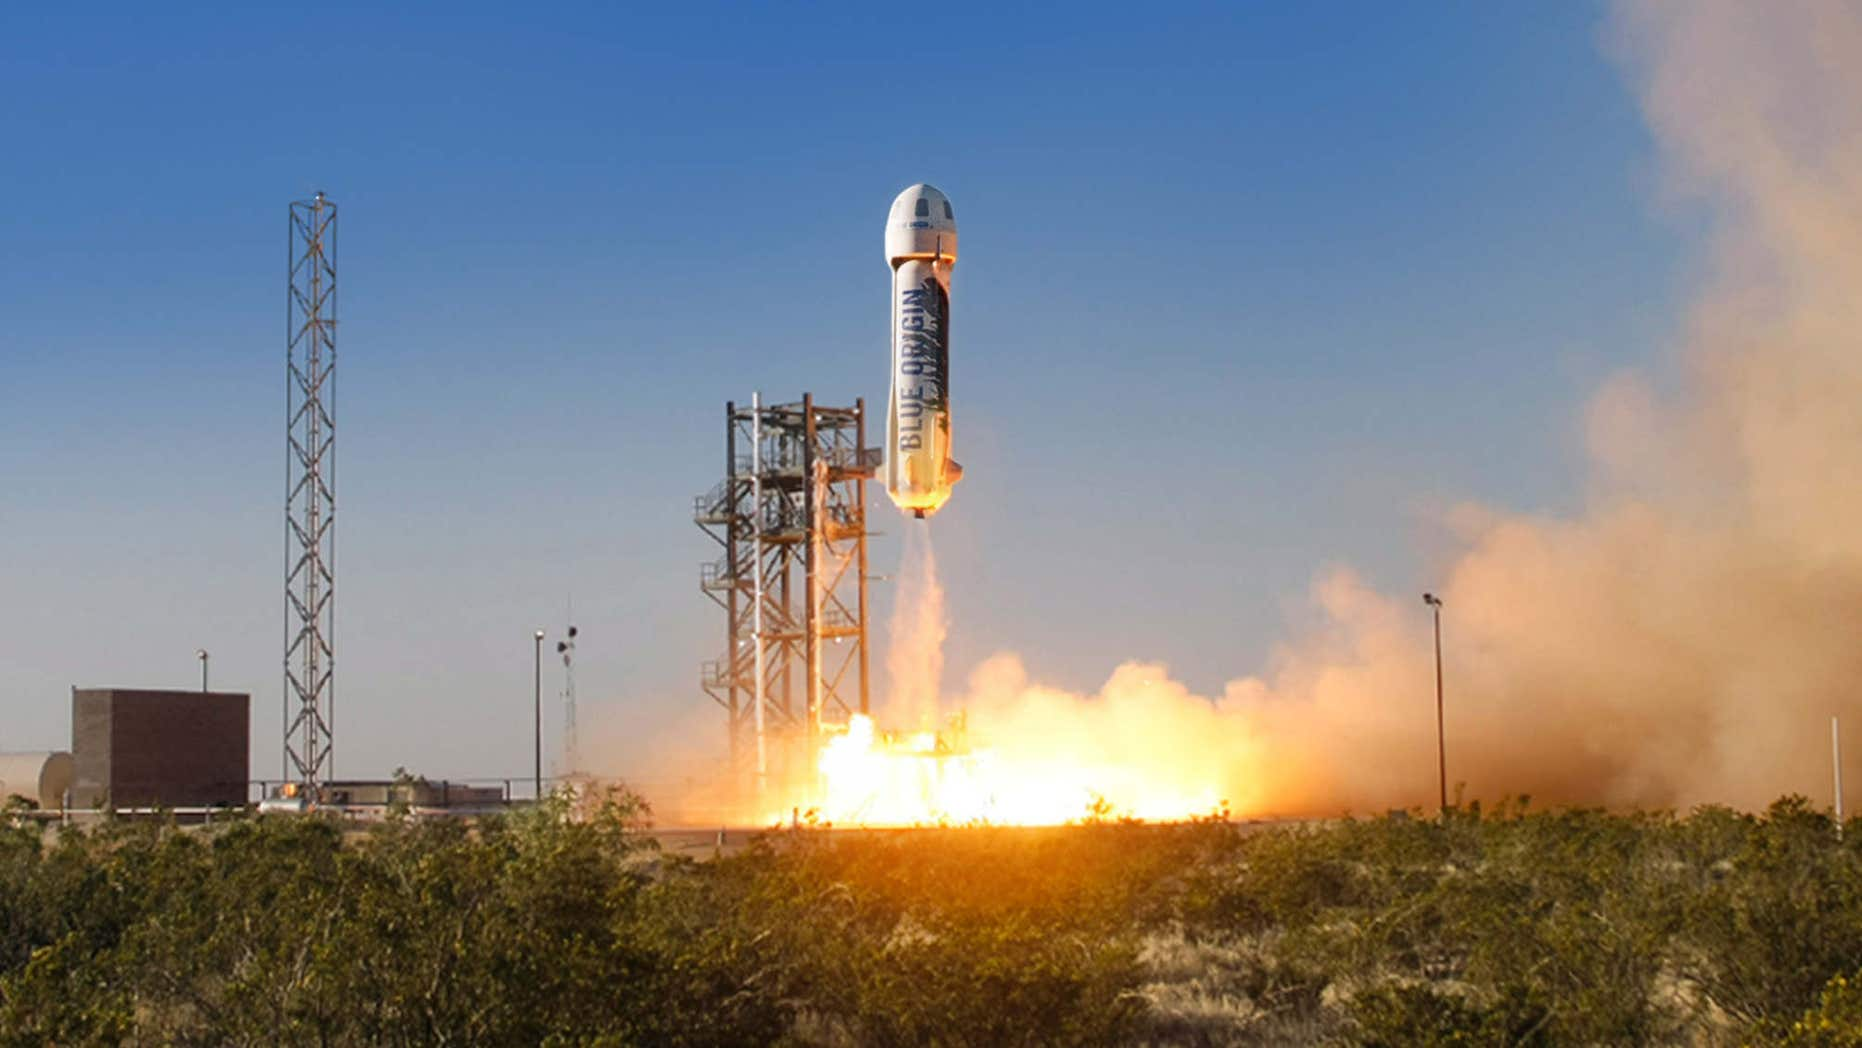 April 29, 2015: The New Shepard space vehicle blasts off on its first developmental test flight over Blue Origin's west Texas Launch Site.